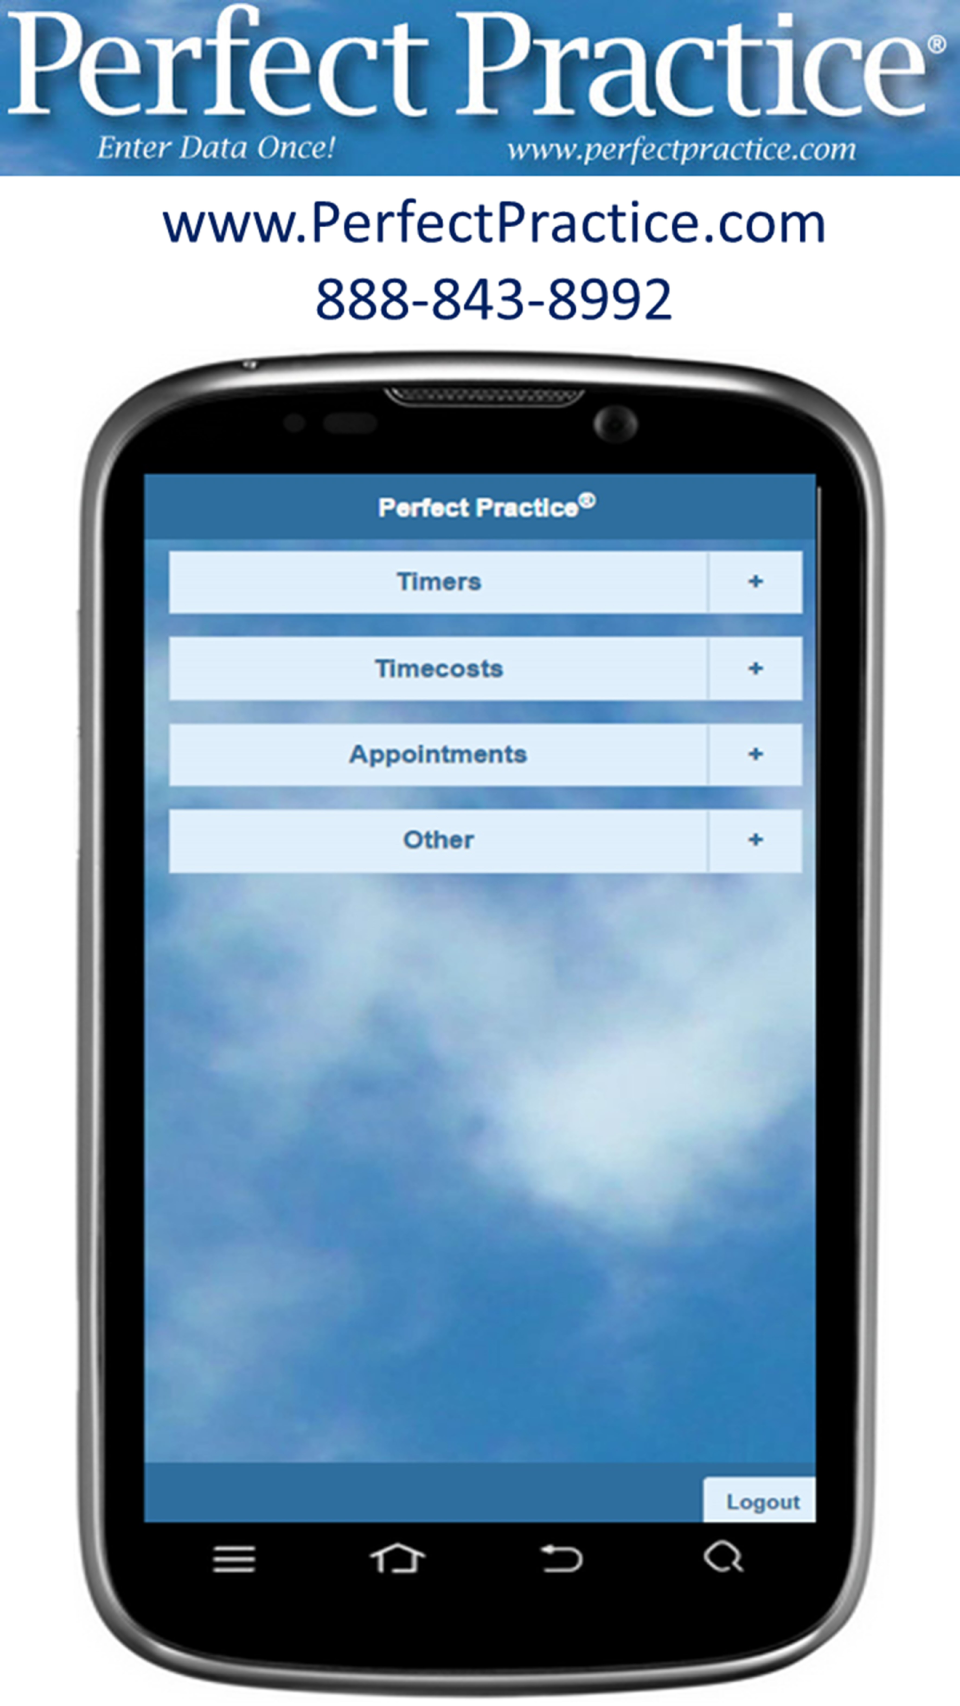 Perfect Practice Software - Perfect Practice Mobile